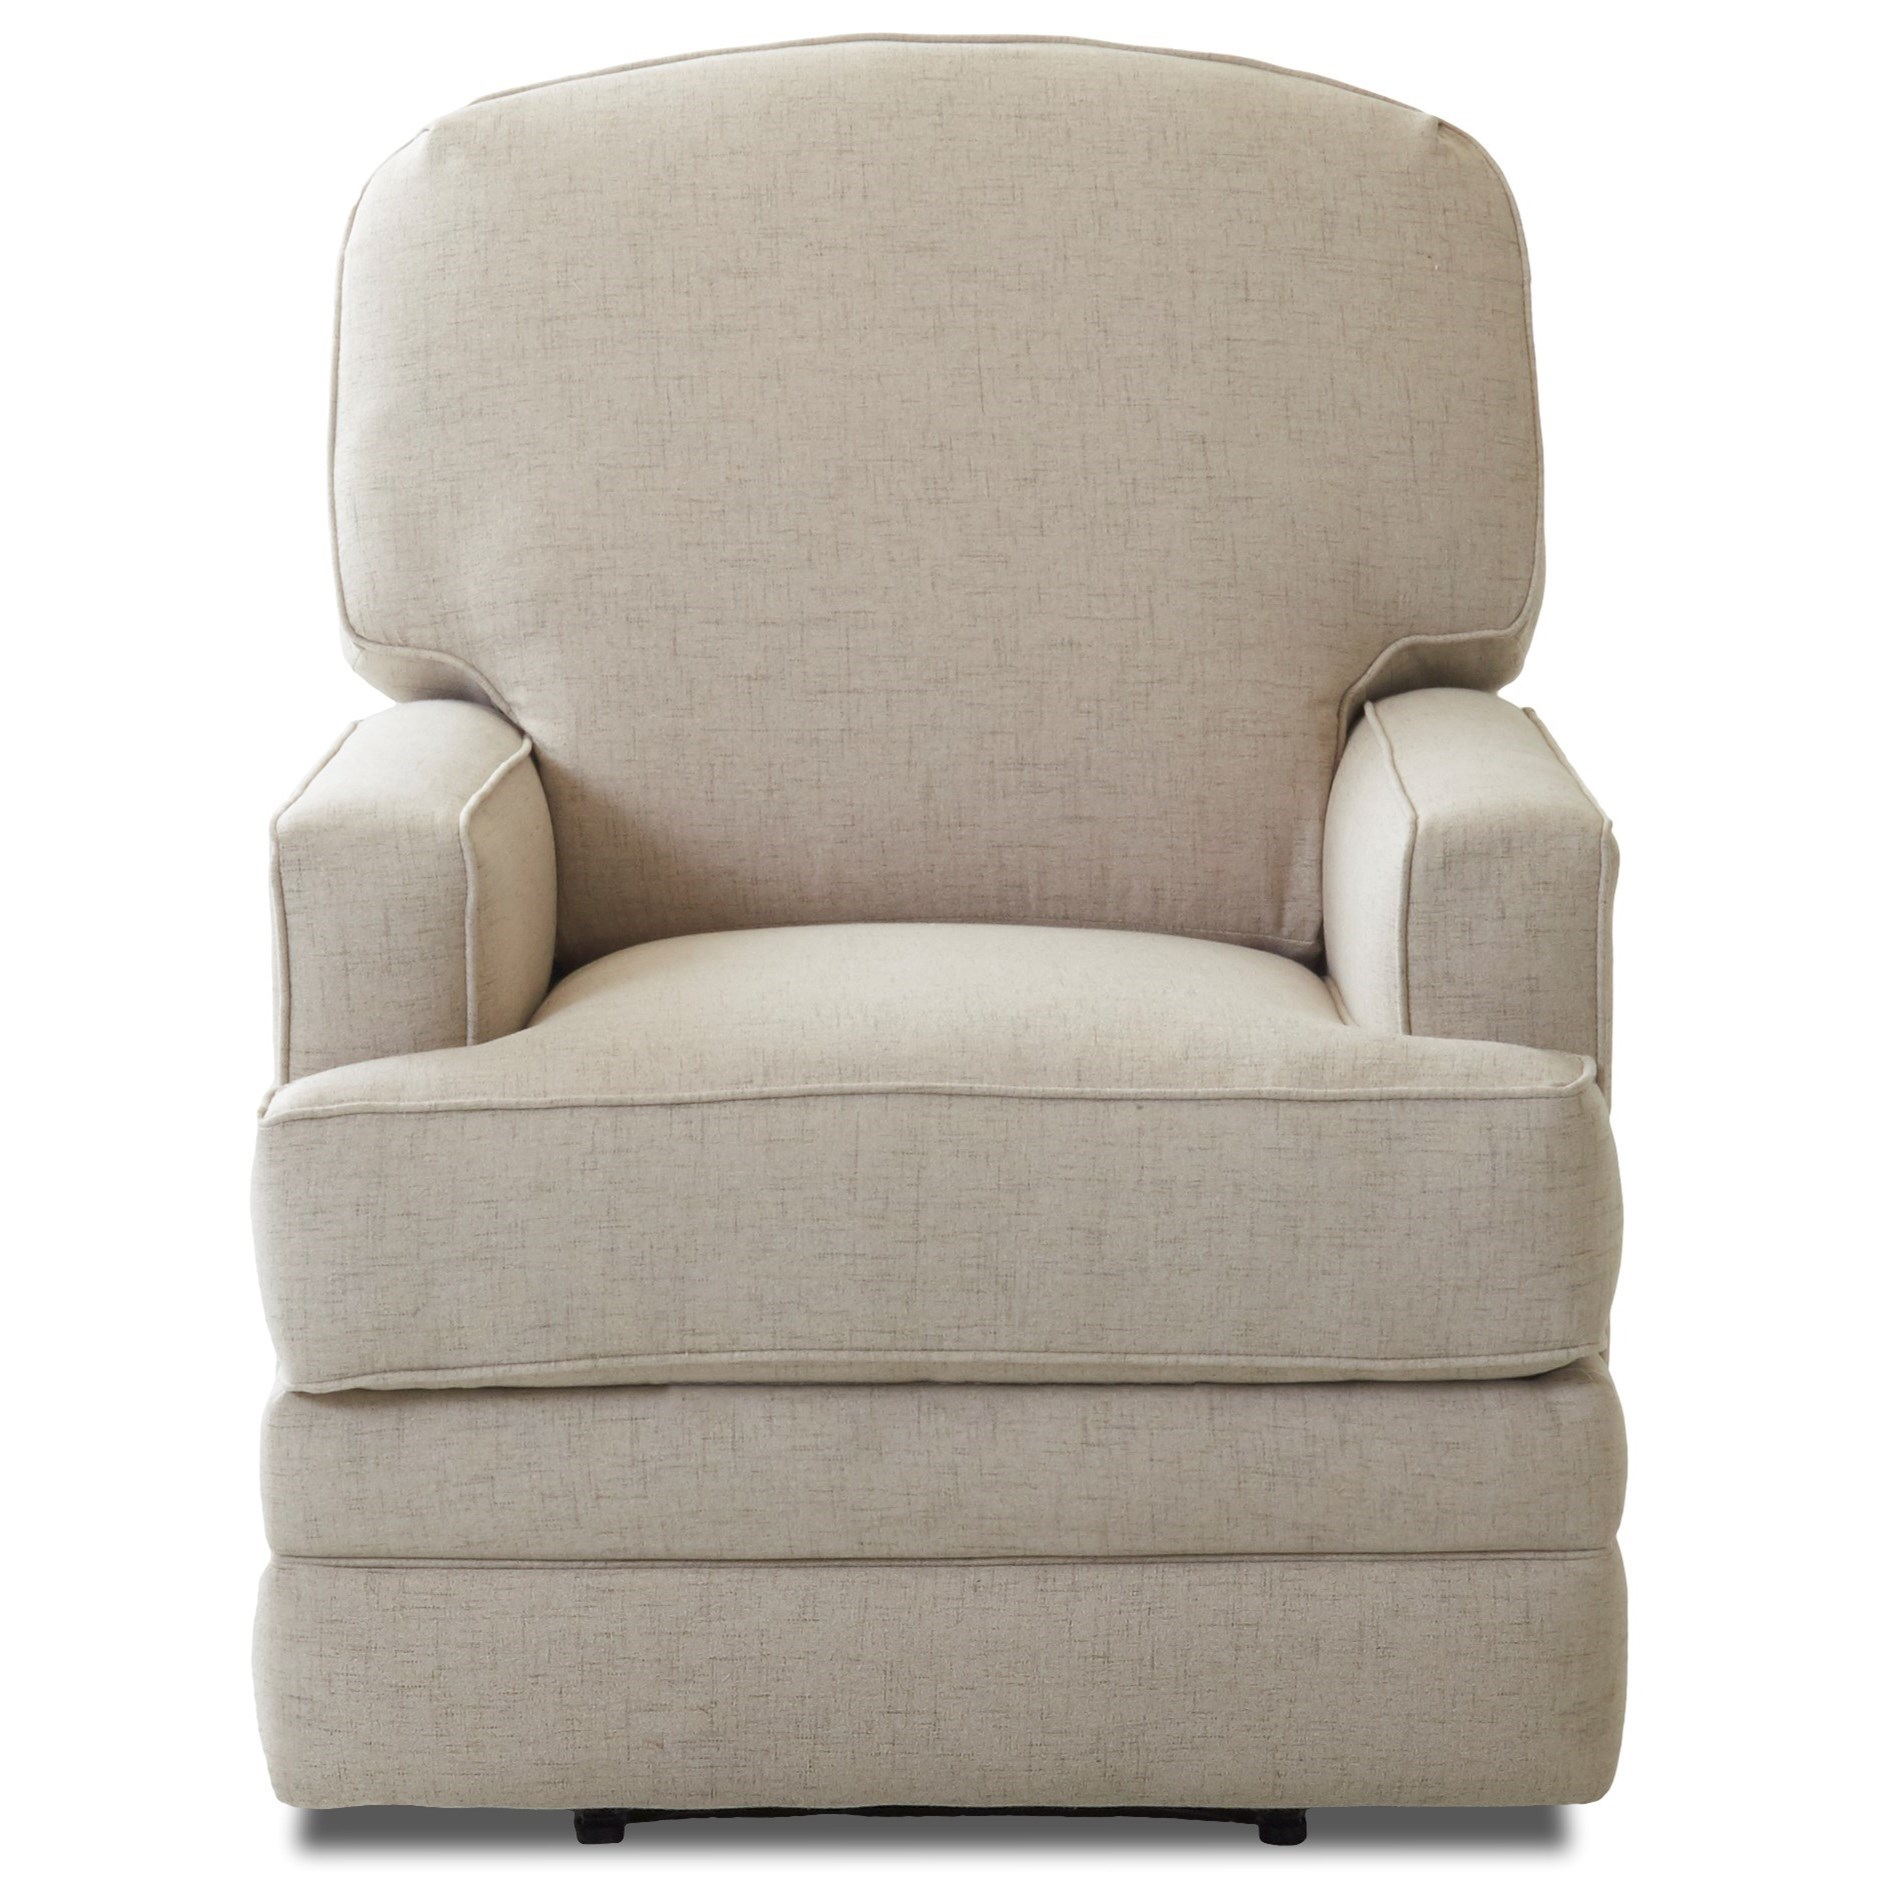 Chapman Casual Gliding Reclining Rocking Chair by Klaussner at Northeast Factory Direct